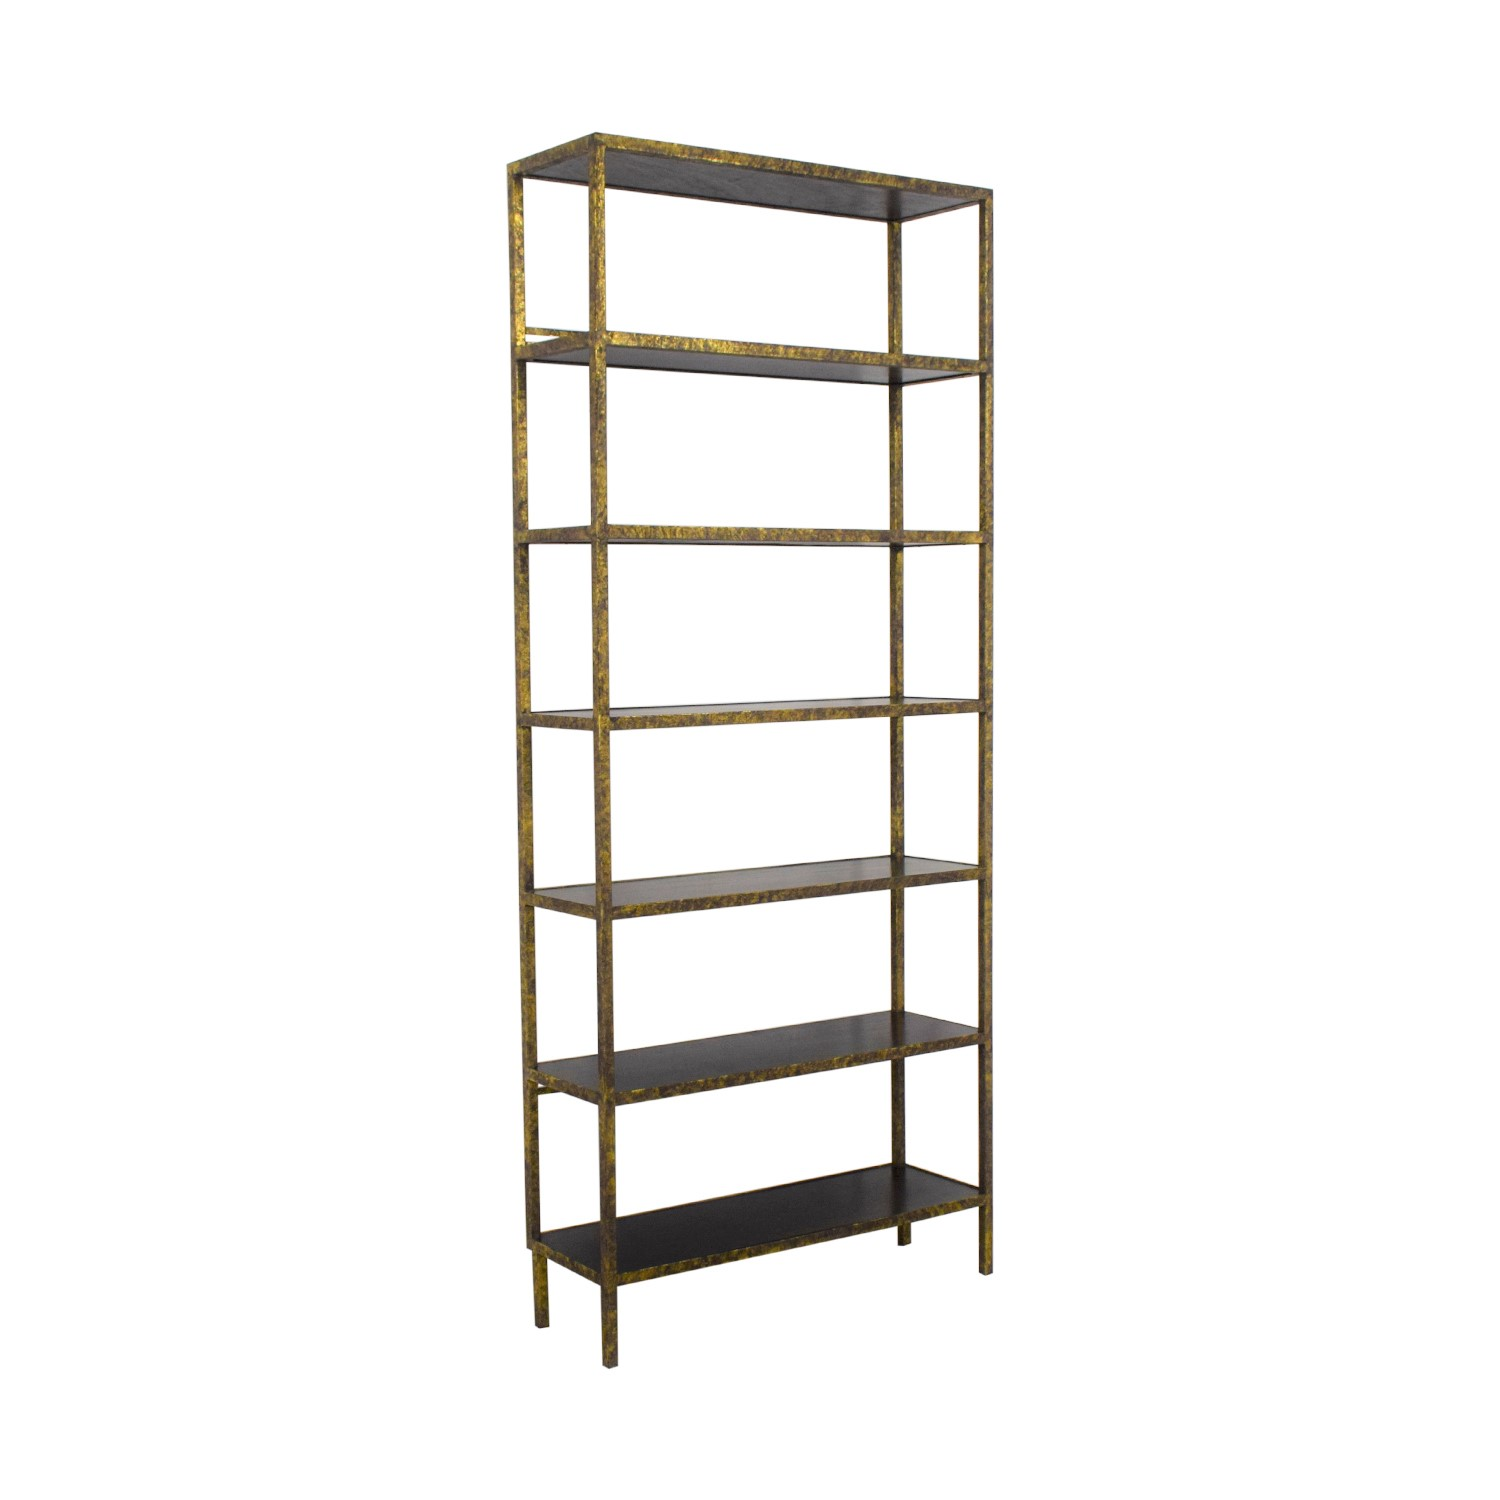 Oly Studio Oly Studio Stella Shelf discount